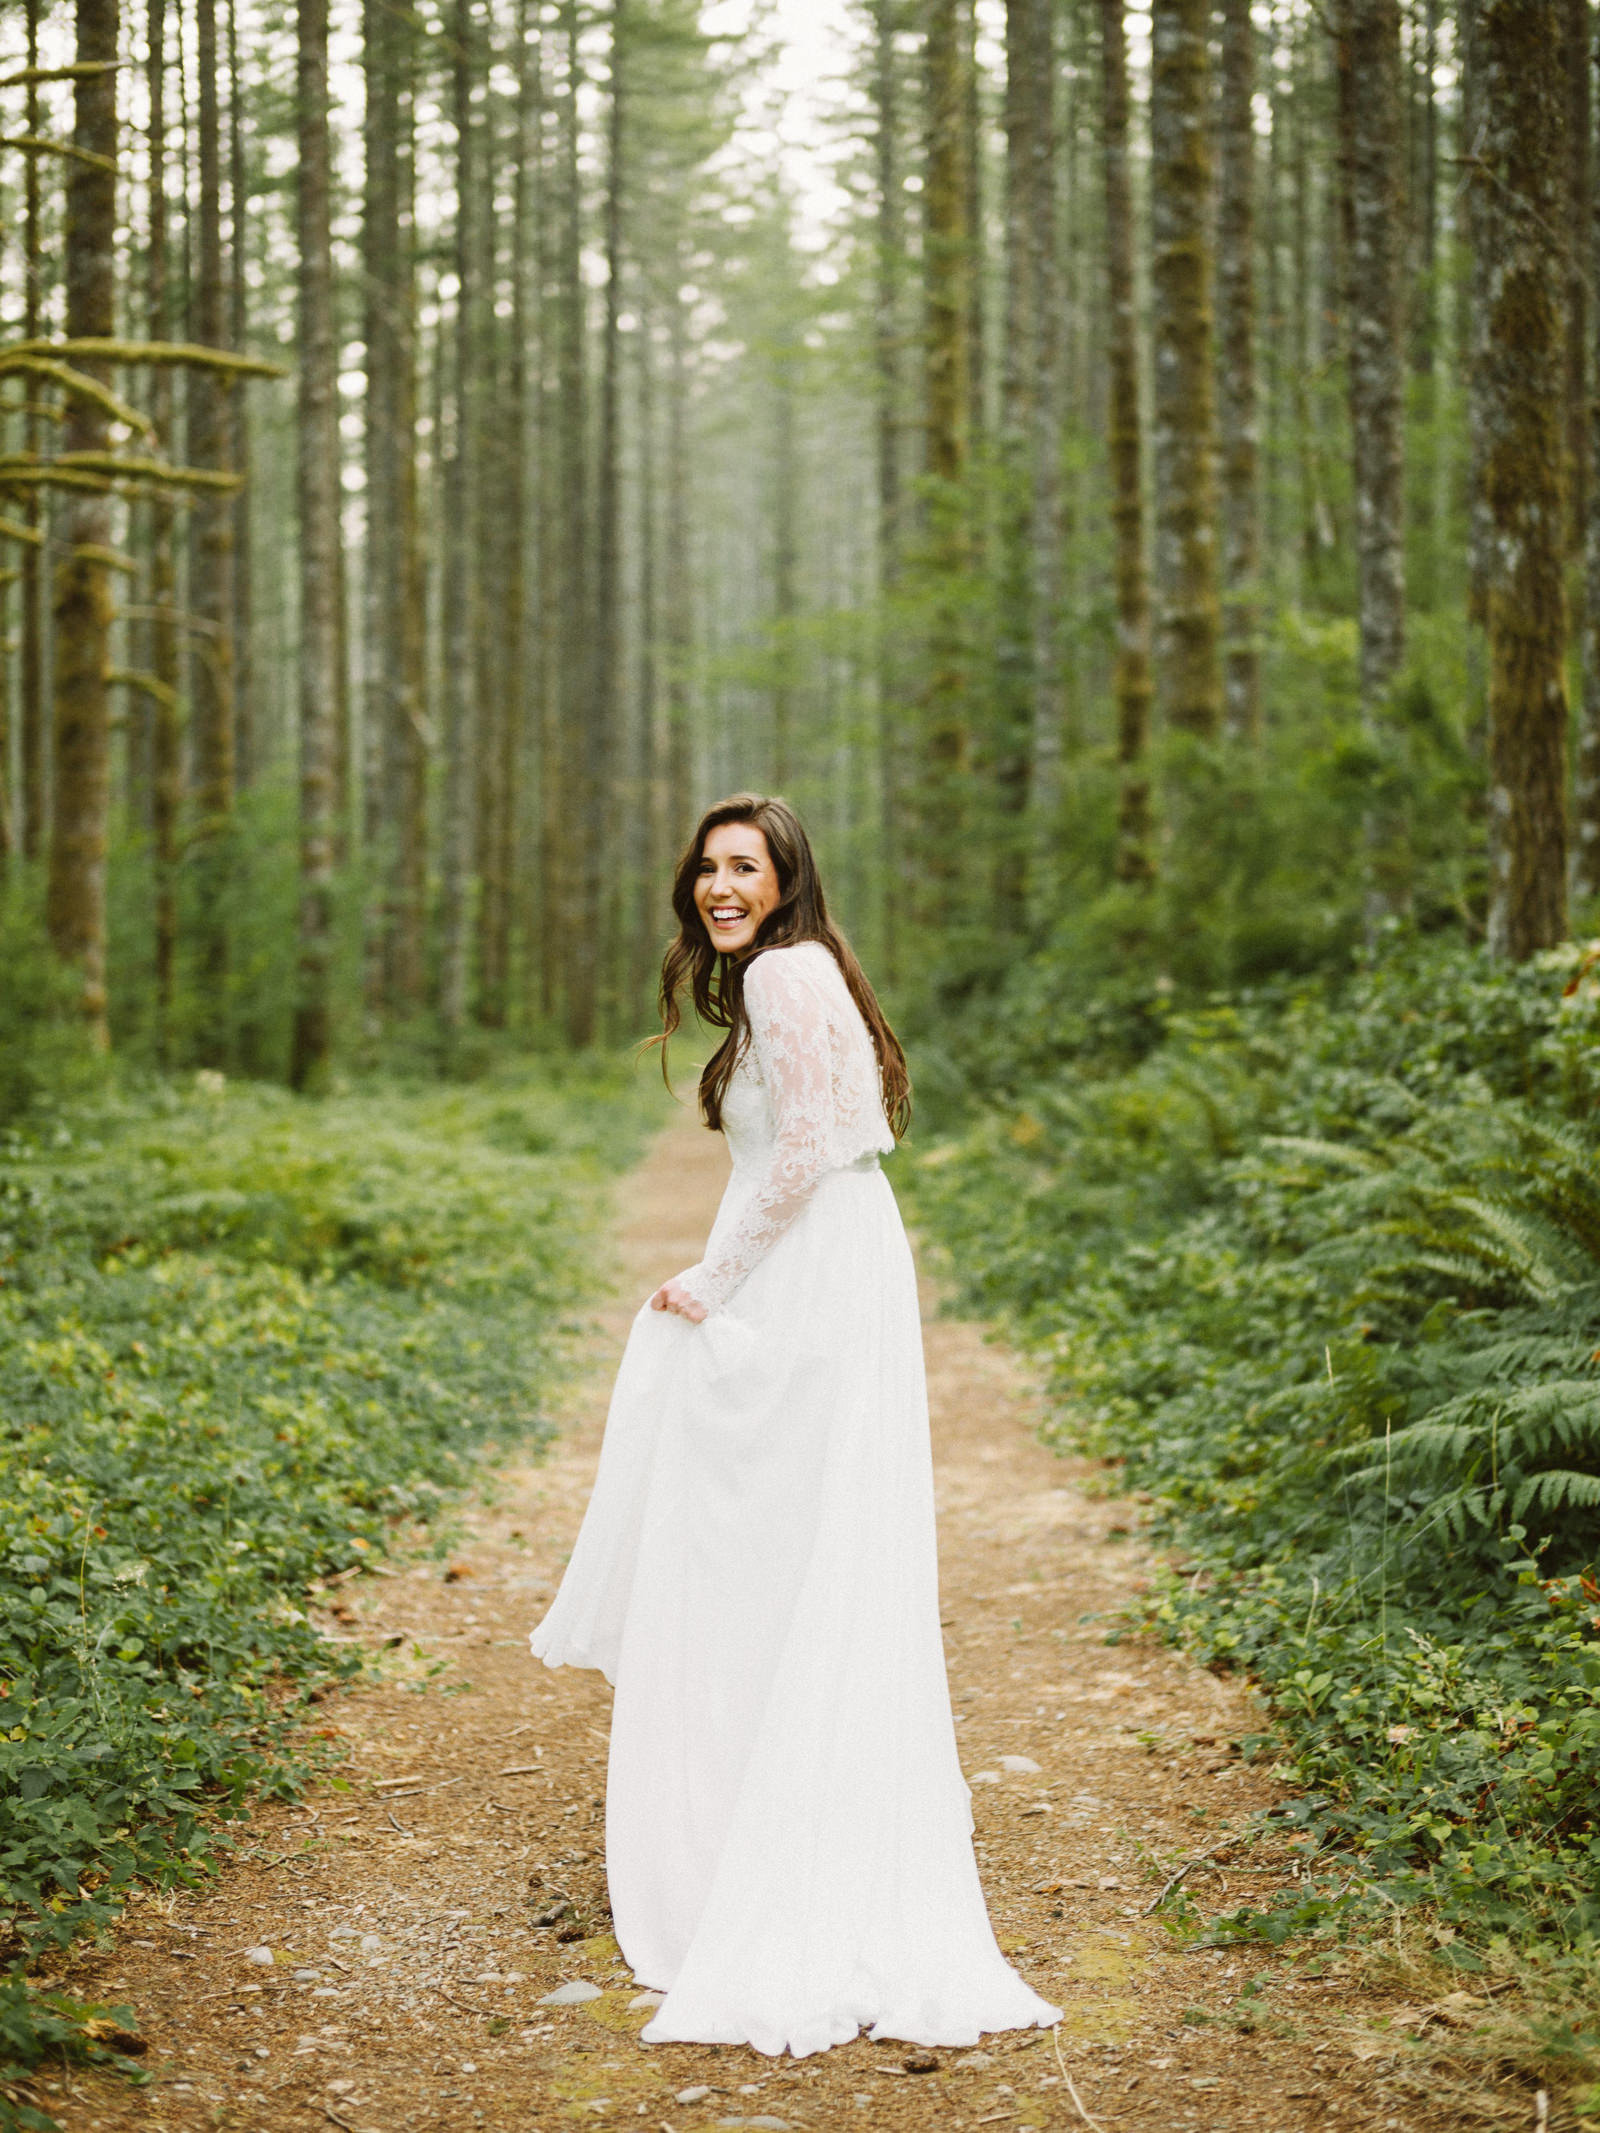 athena-and-camron-seattle-elopement-wedding-benj-haisch-rattlesnake-lake-christian-couple-goals25